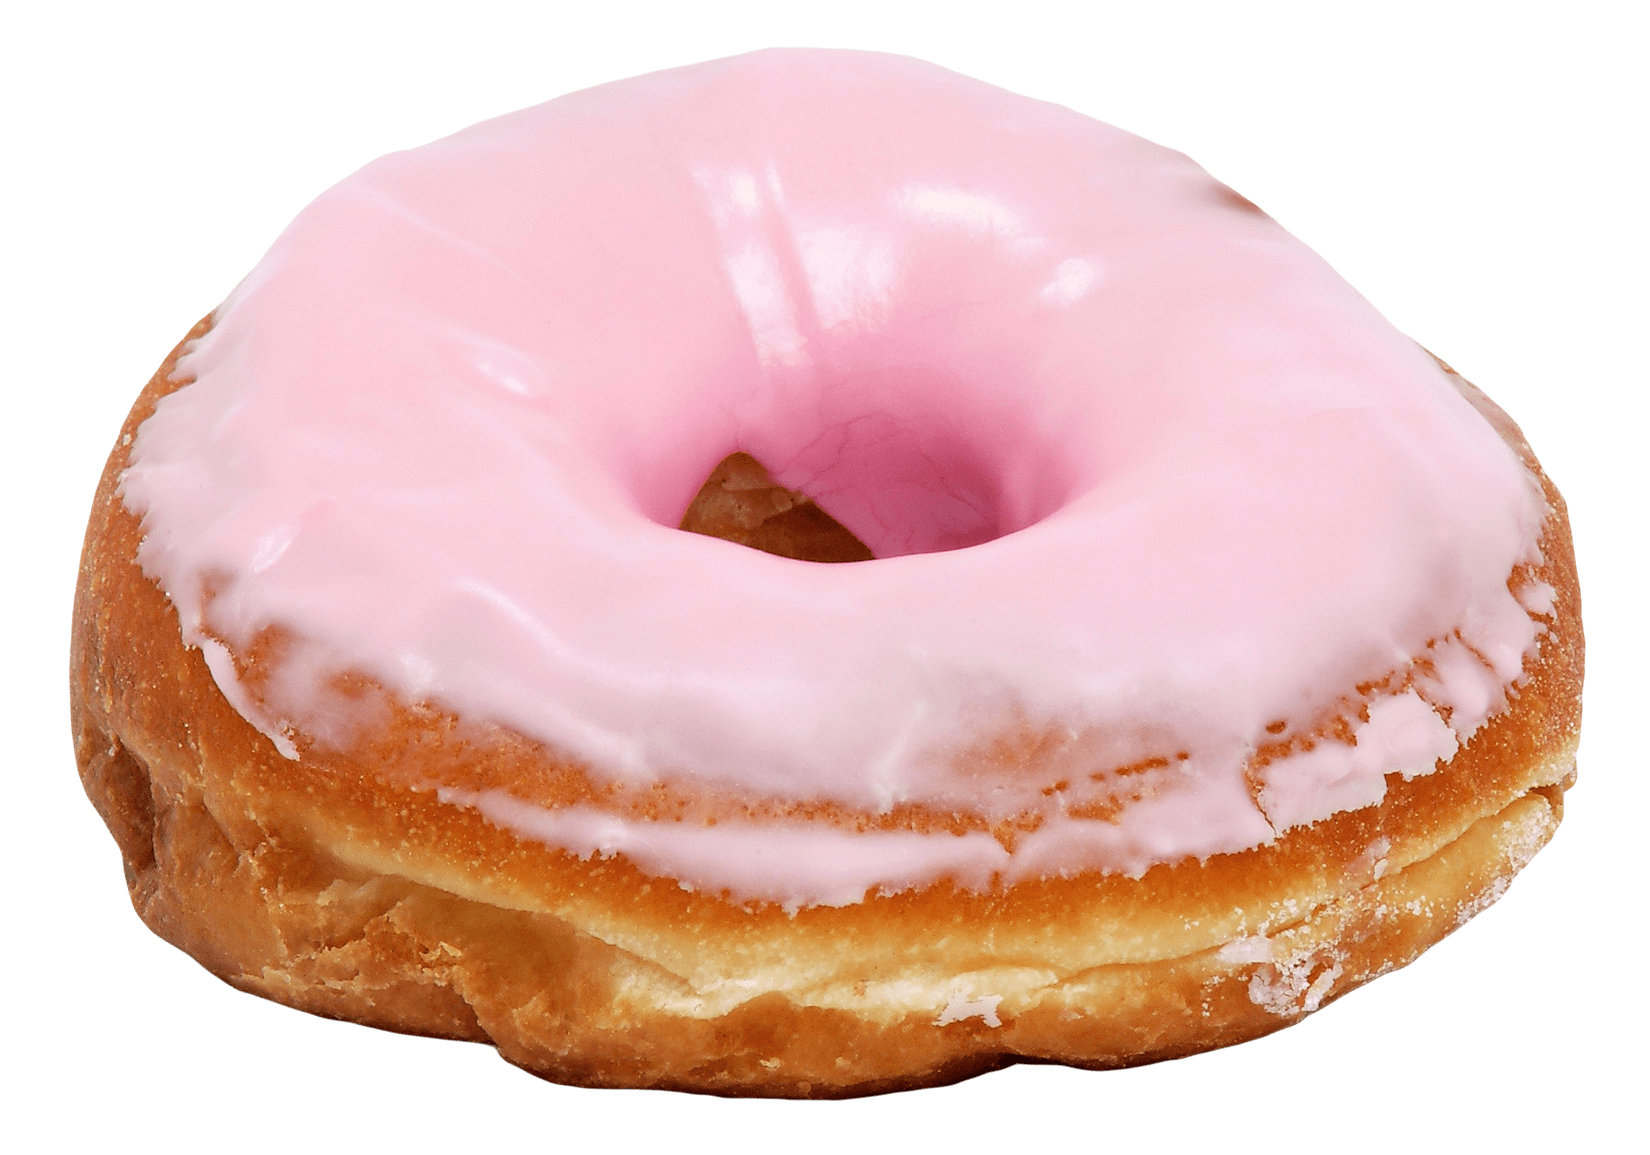 Big pink donut transparent. Doughnut clipart sugary food